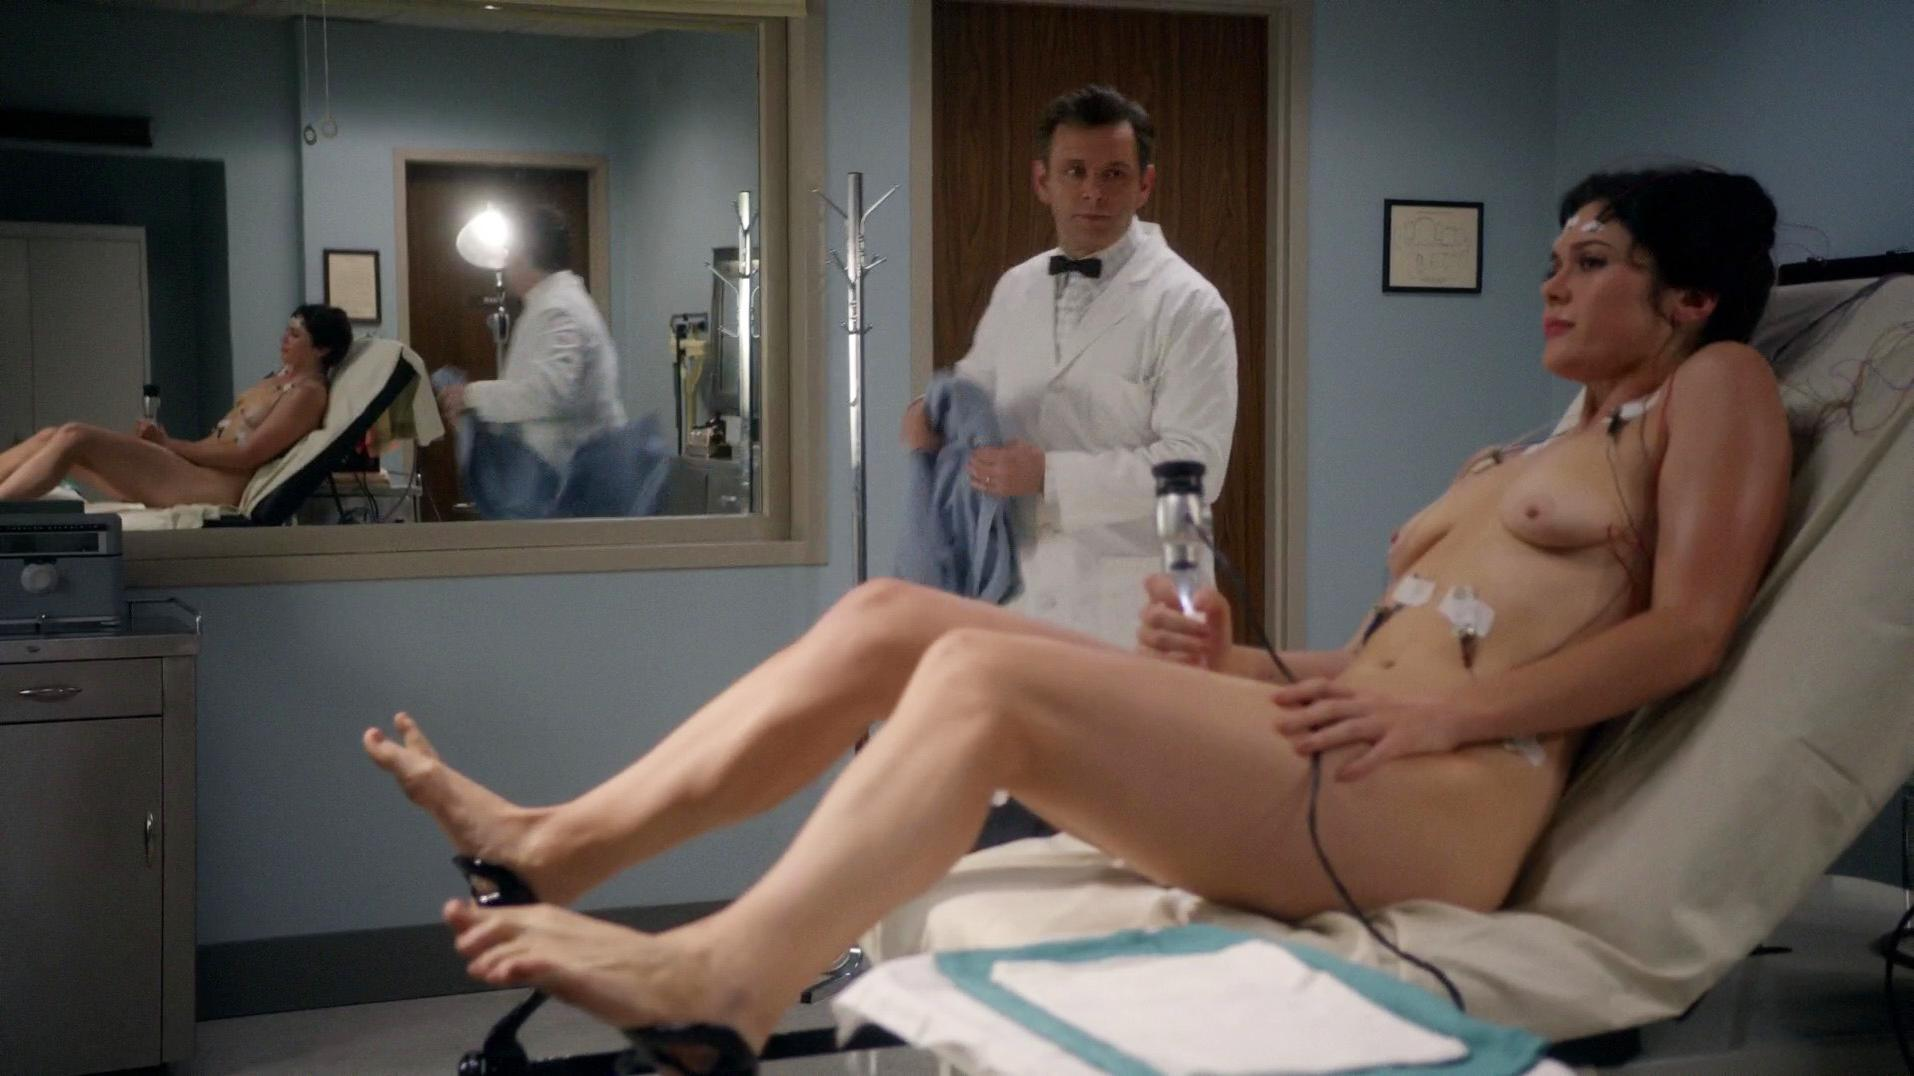 Mariel Neto nude, Lizzy Caplan sexy - Masters of Sex s02e04 (2014)